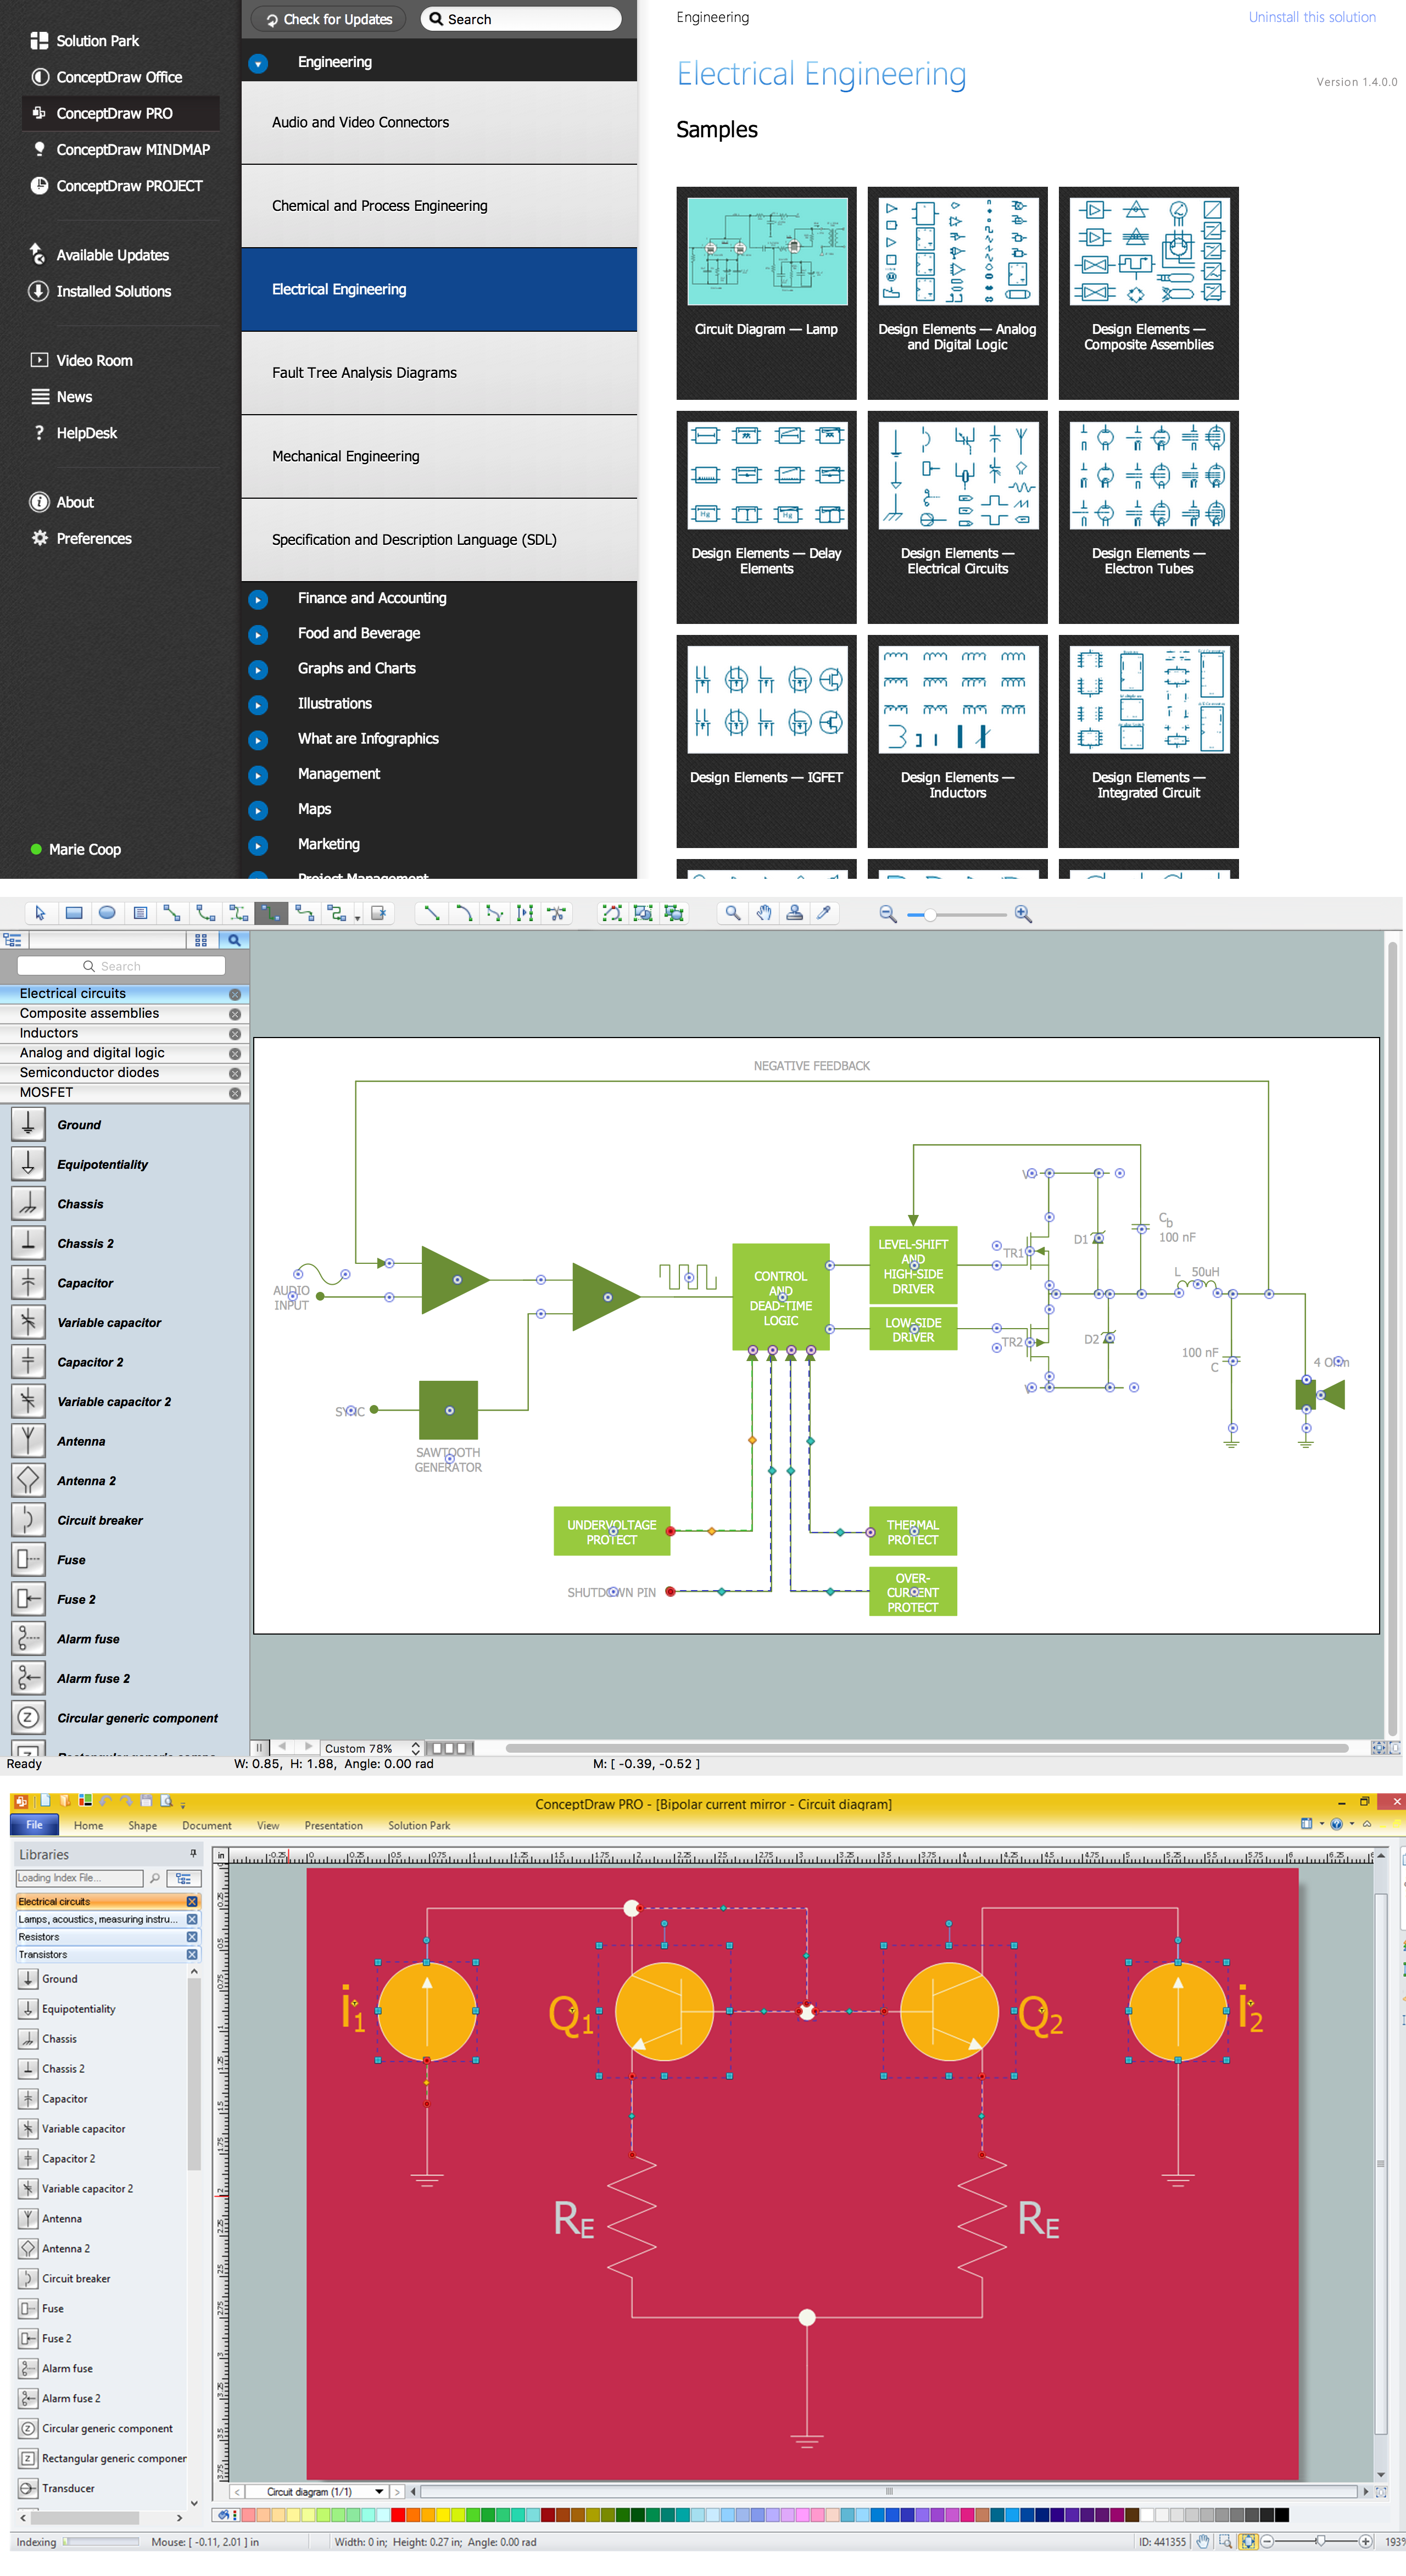 Wiring Diagram with ConceptDraw PRO